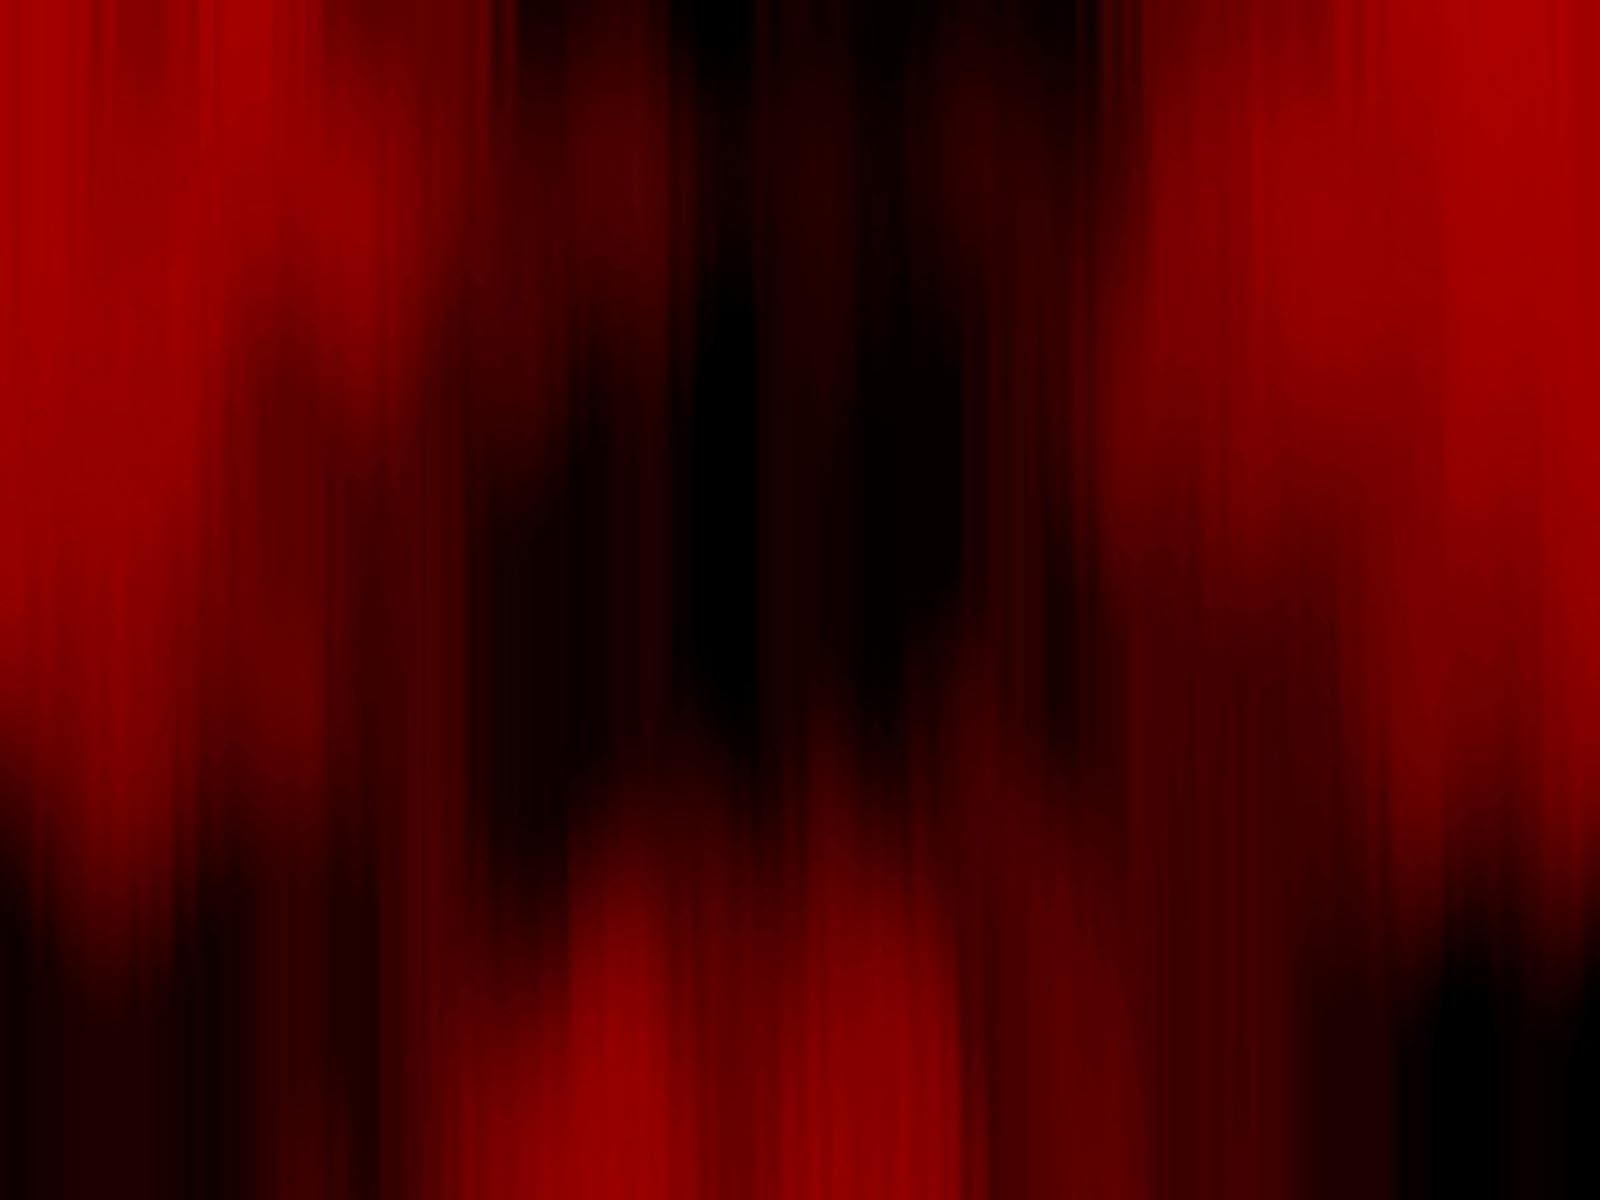 Red And Black Wallpaper  69 Free Hd Wallpaper